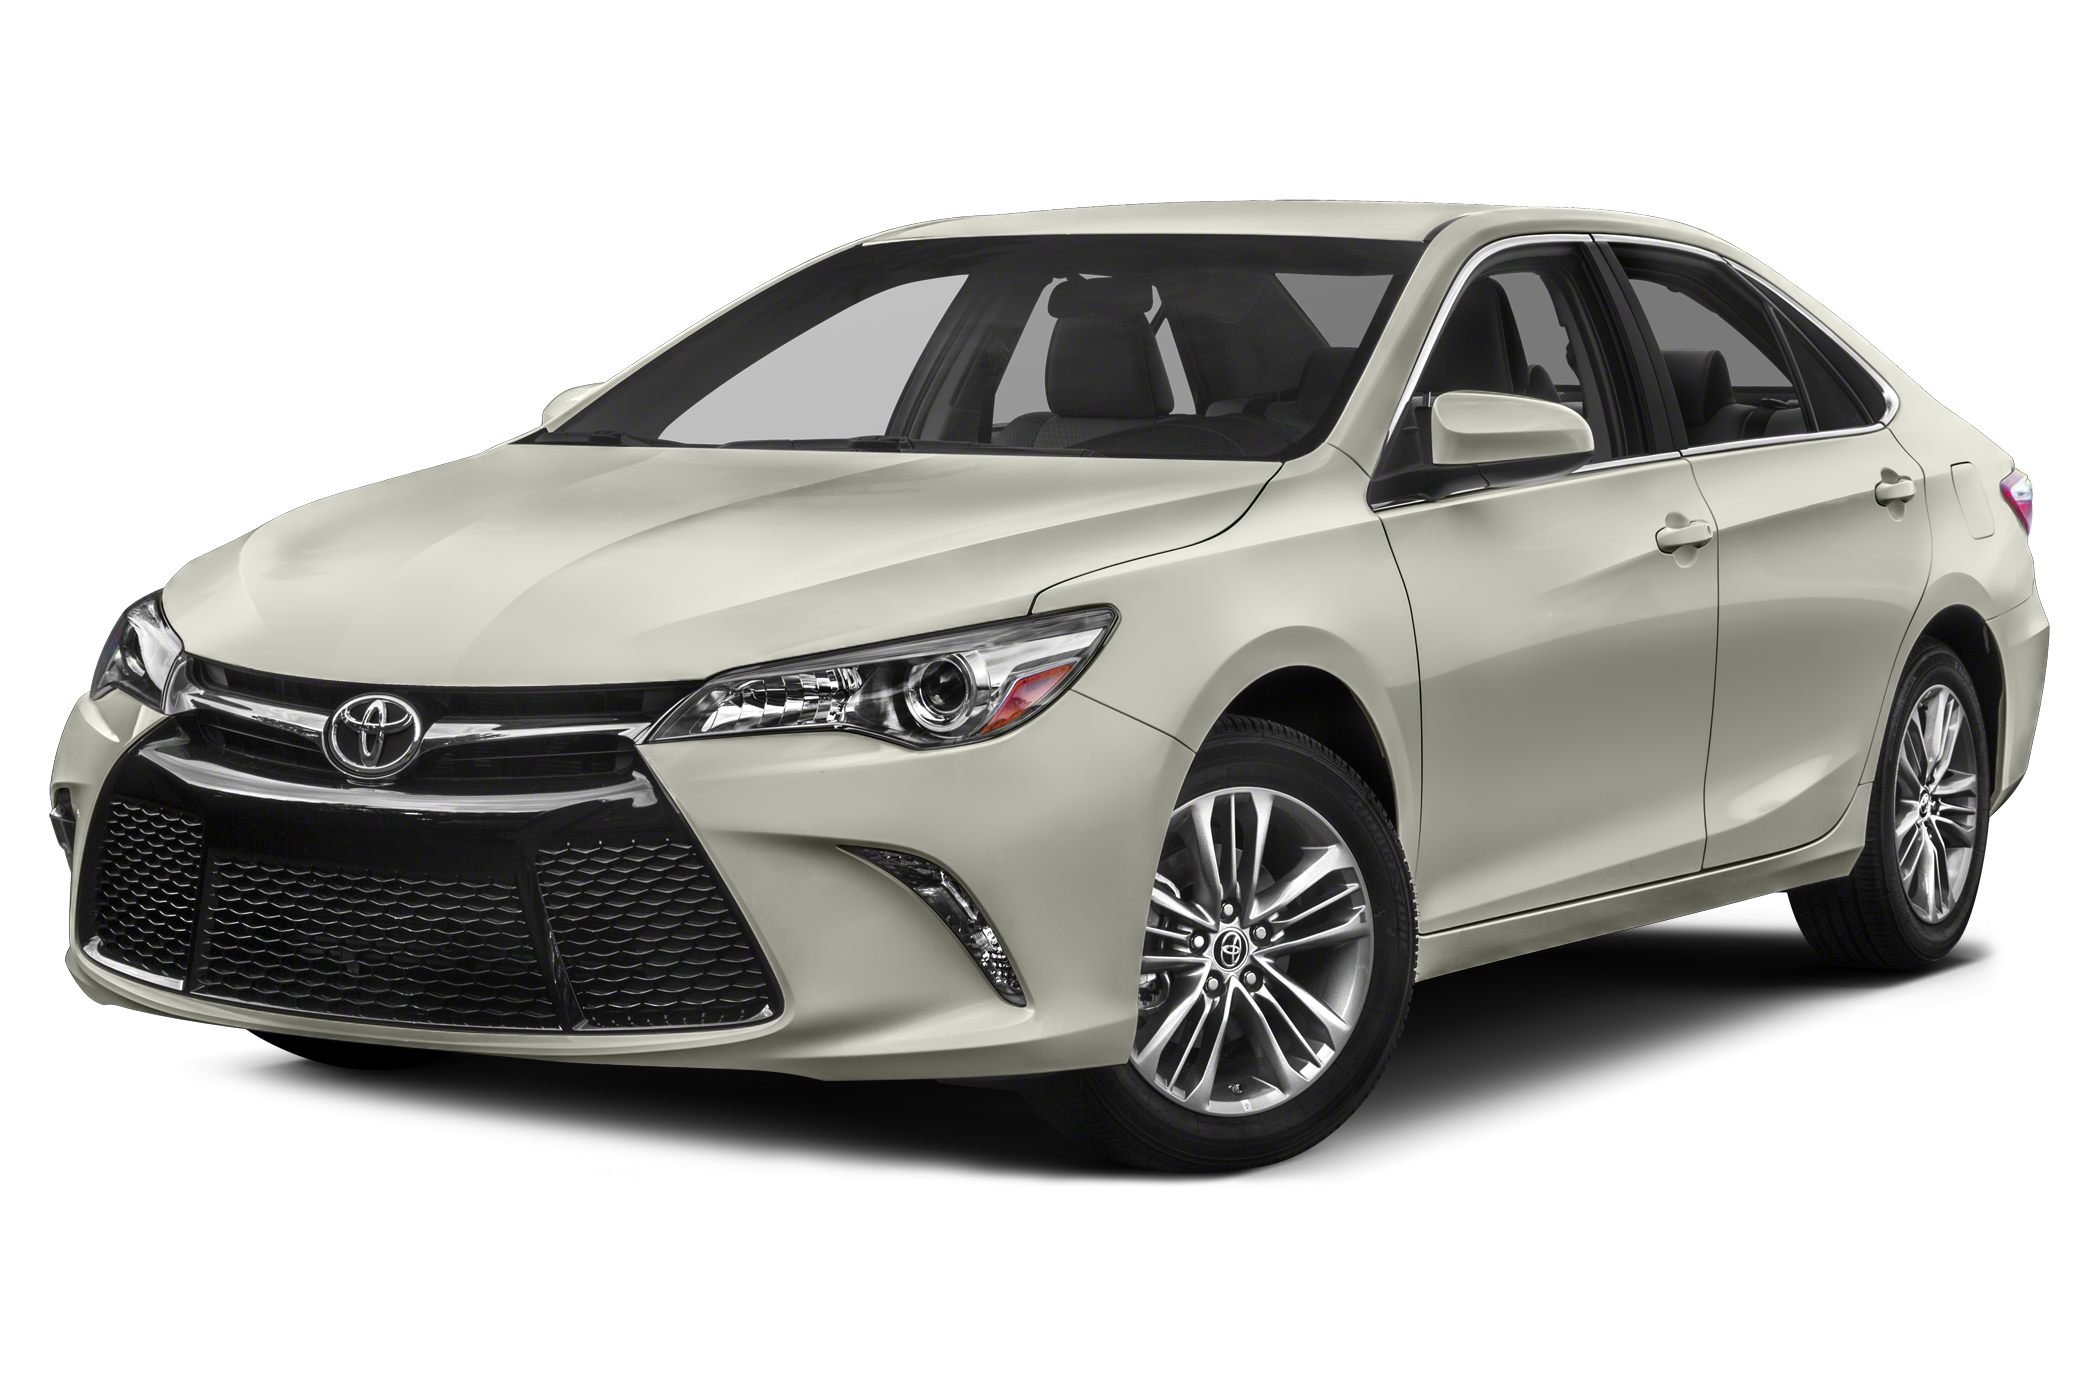 2015 Toyota Camry SE Sedan for sale in Allentown for $27,170 with 0 miles